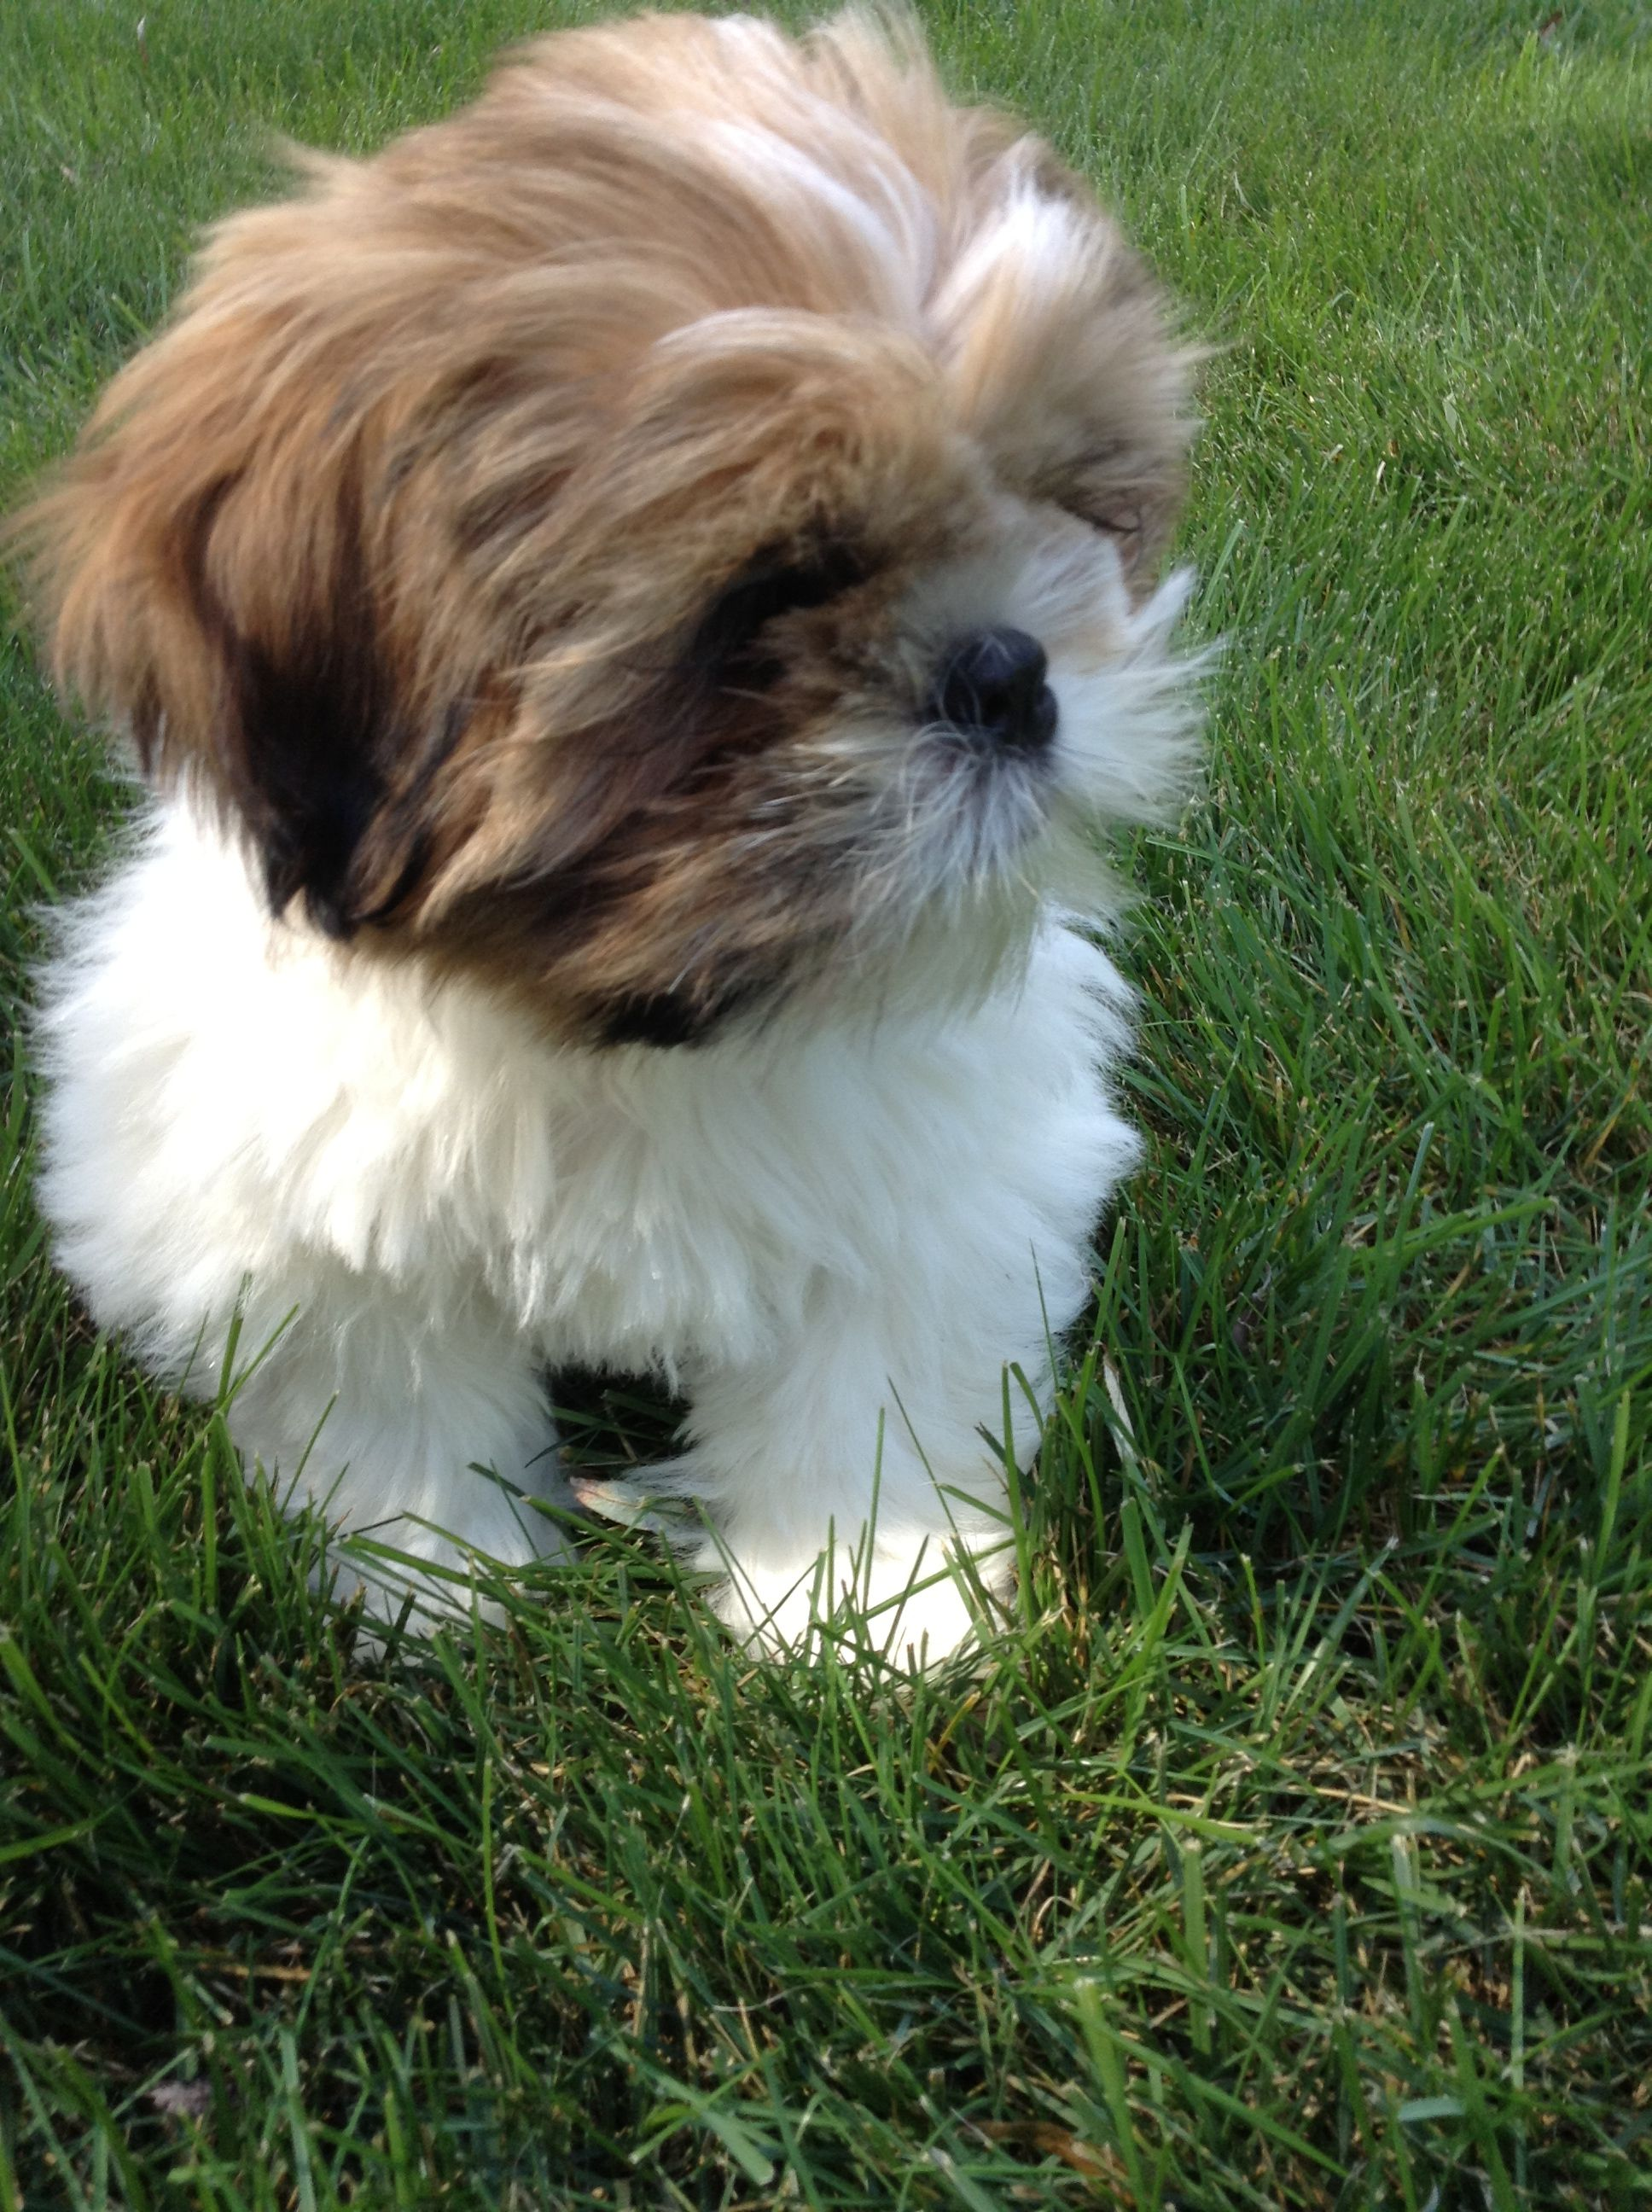 Shih Tzu Puppy This Is Toby Shih Tzu Puppy Shih Tzu Puppies